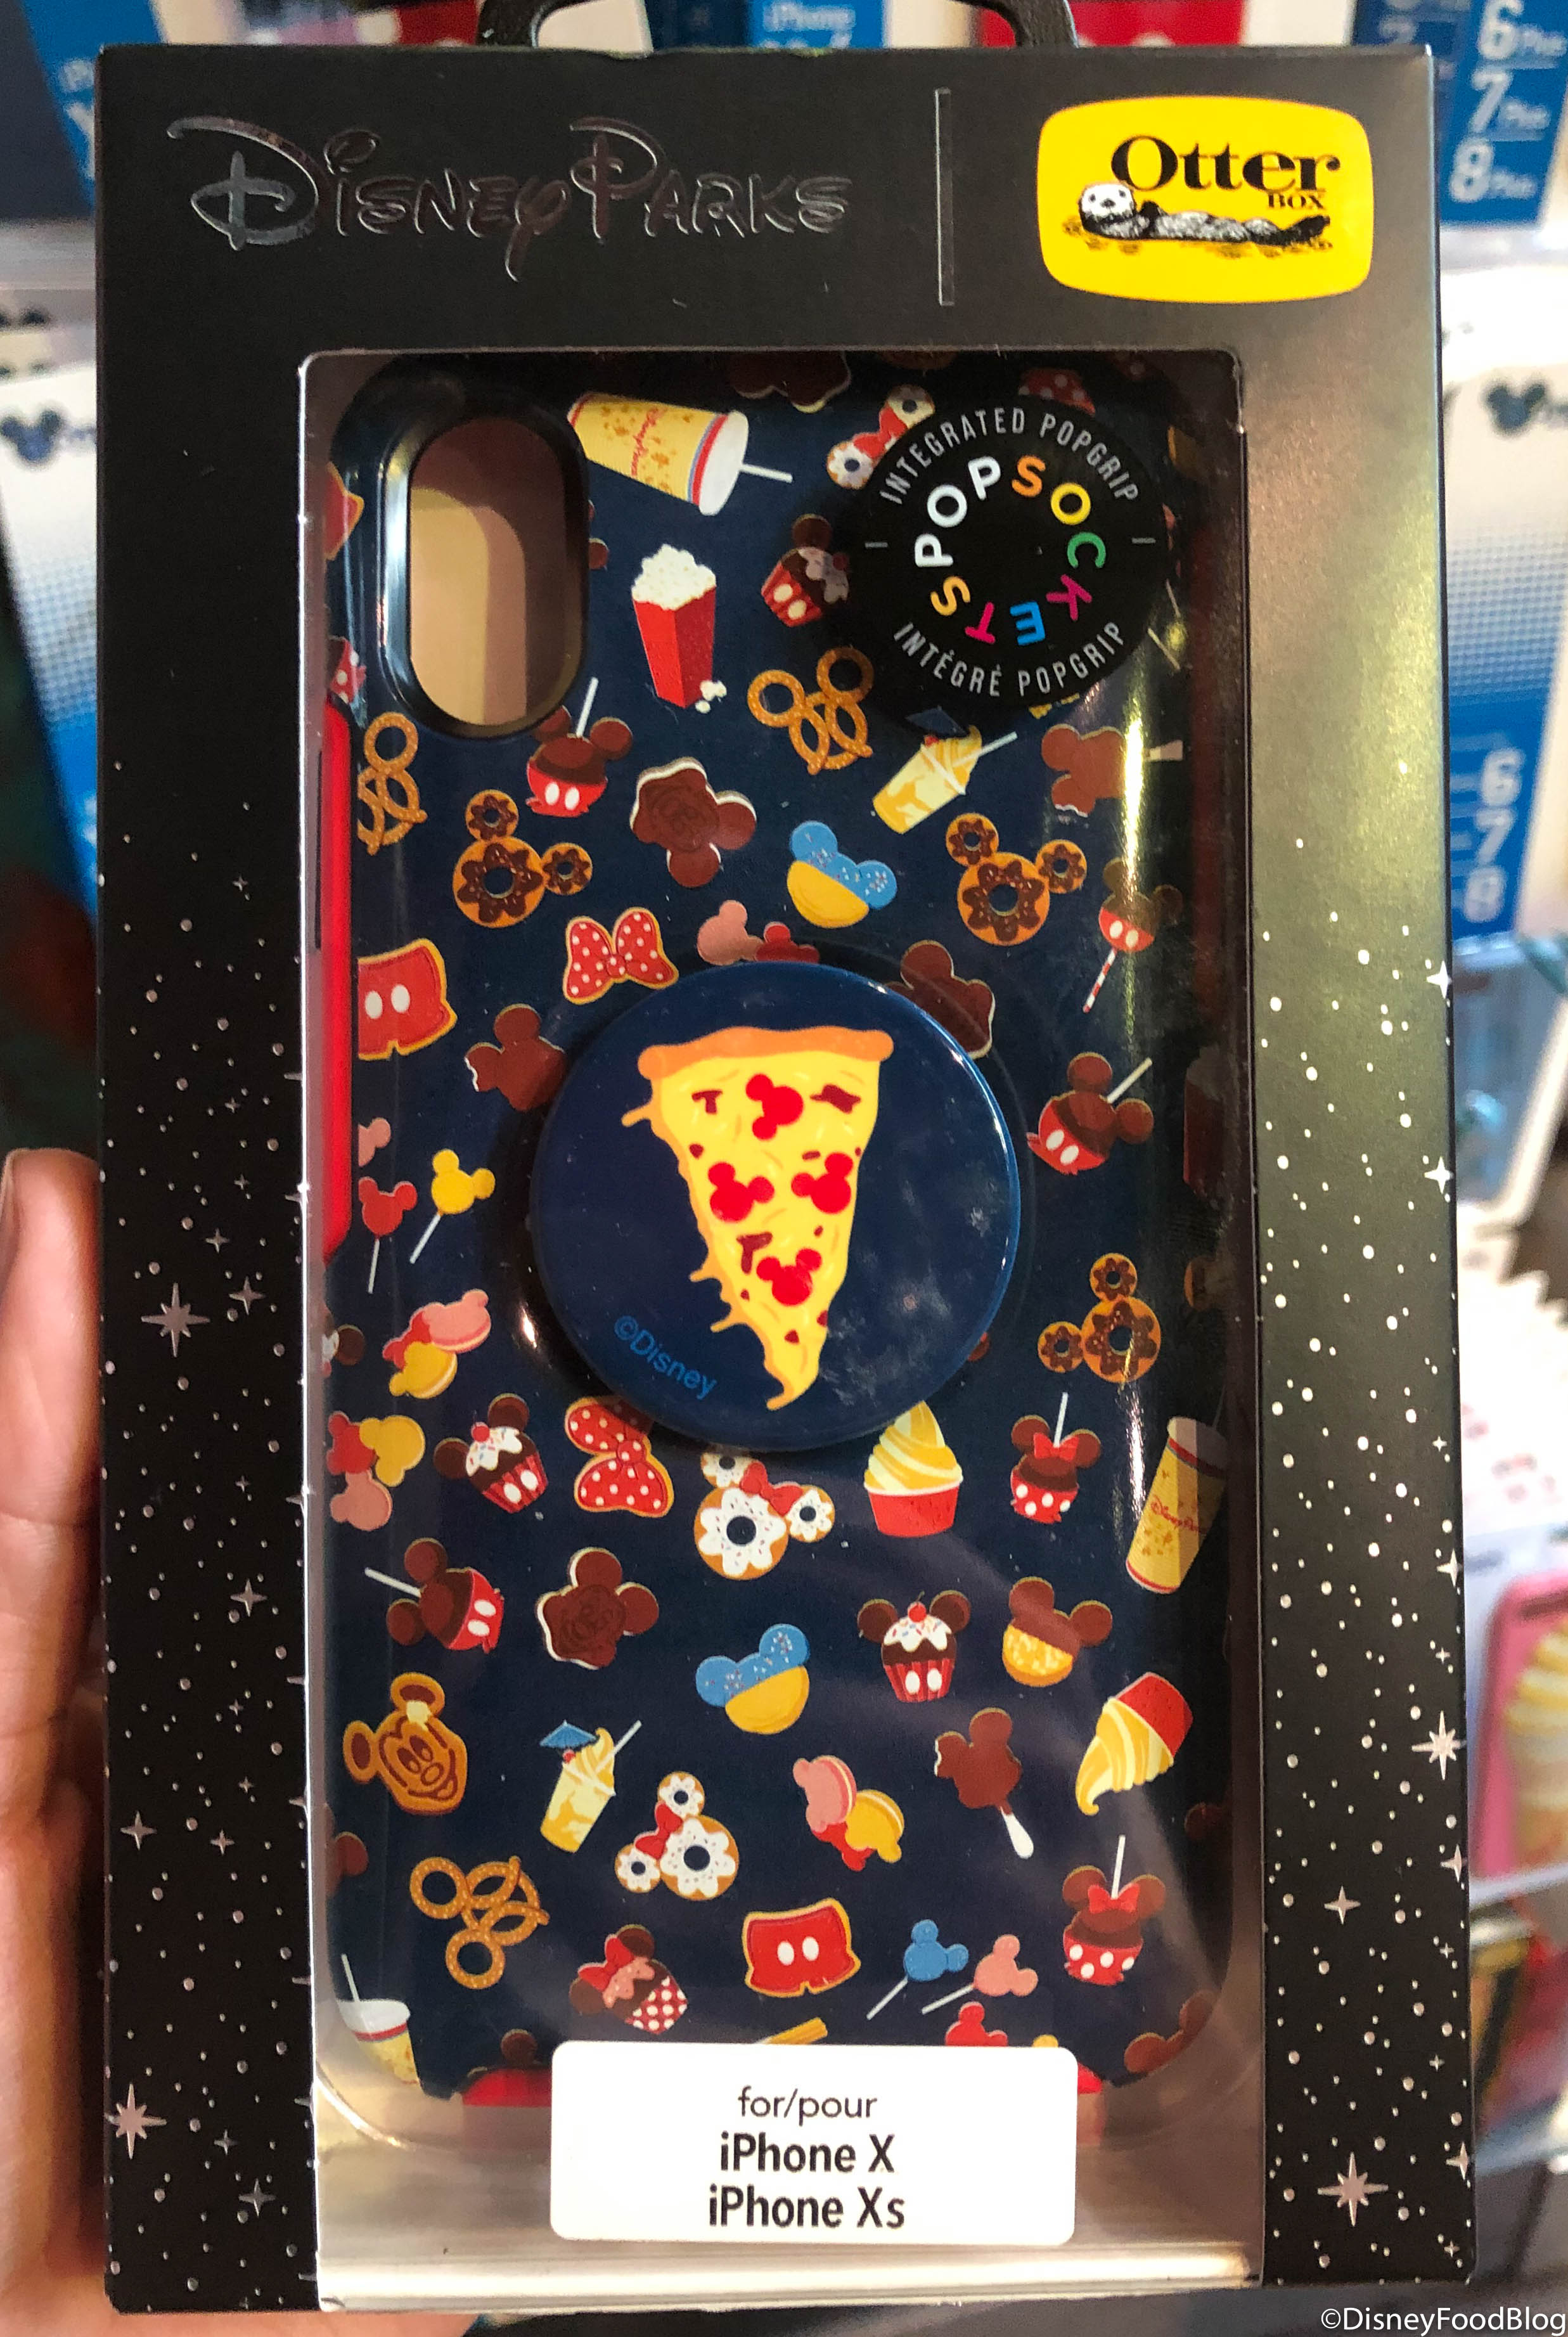 reputable site 166e6 d05b9 We're LOVING This Pop Socket Disney Snacks Phone Case Spotted in The ...